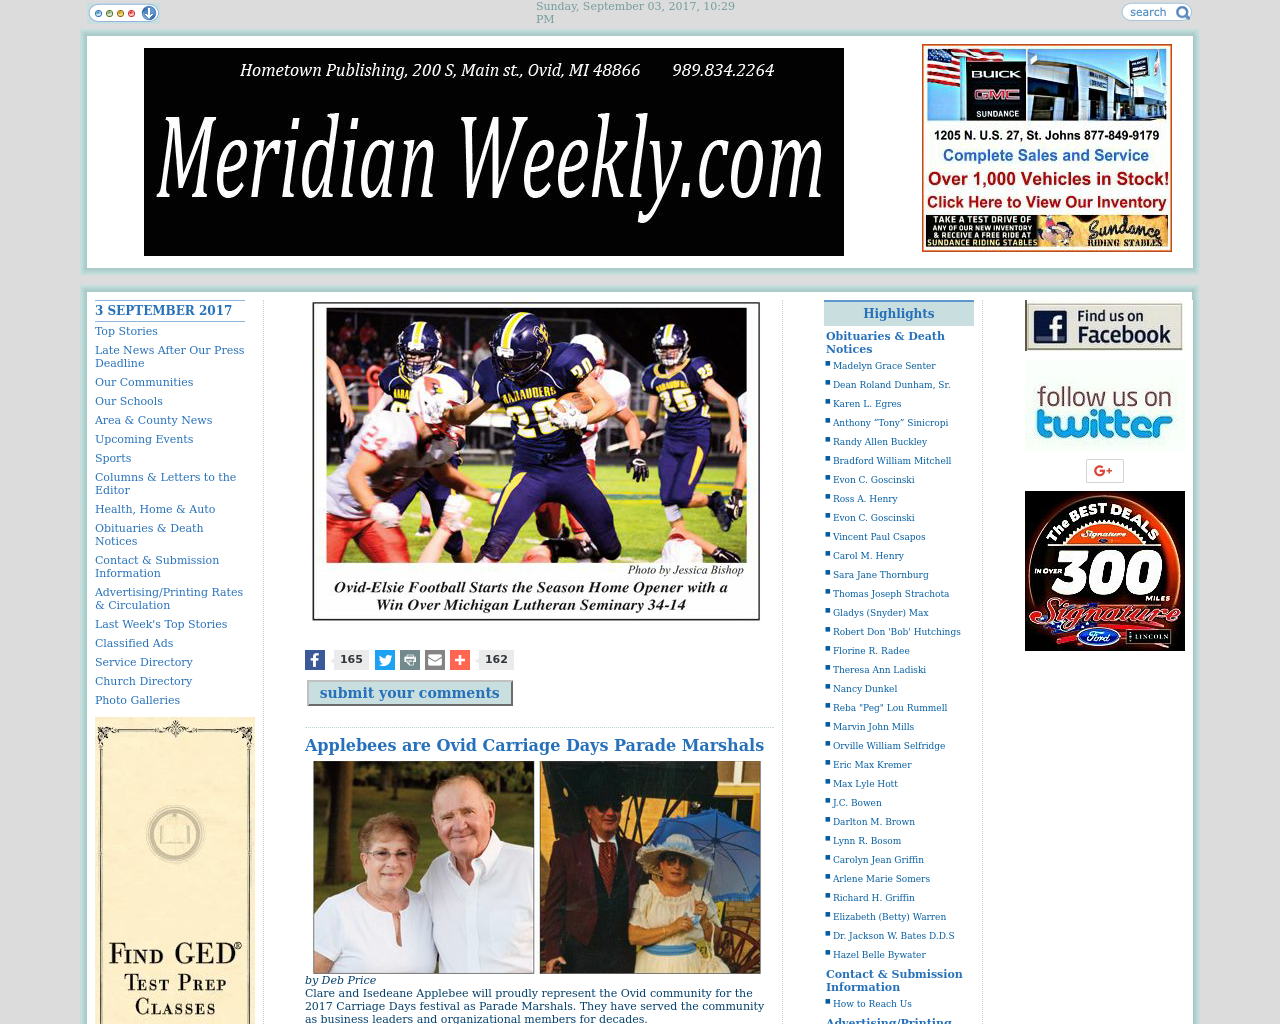 MeridianWeekly.com-Advertising-Reviews-Pricing